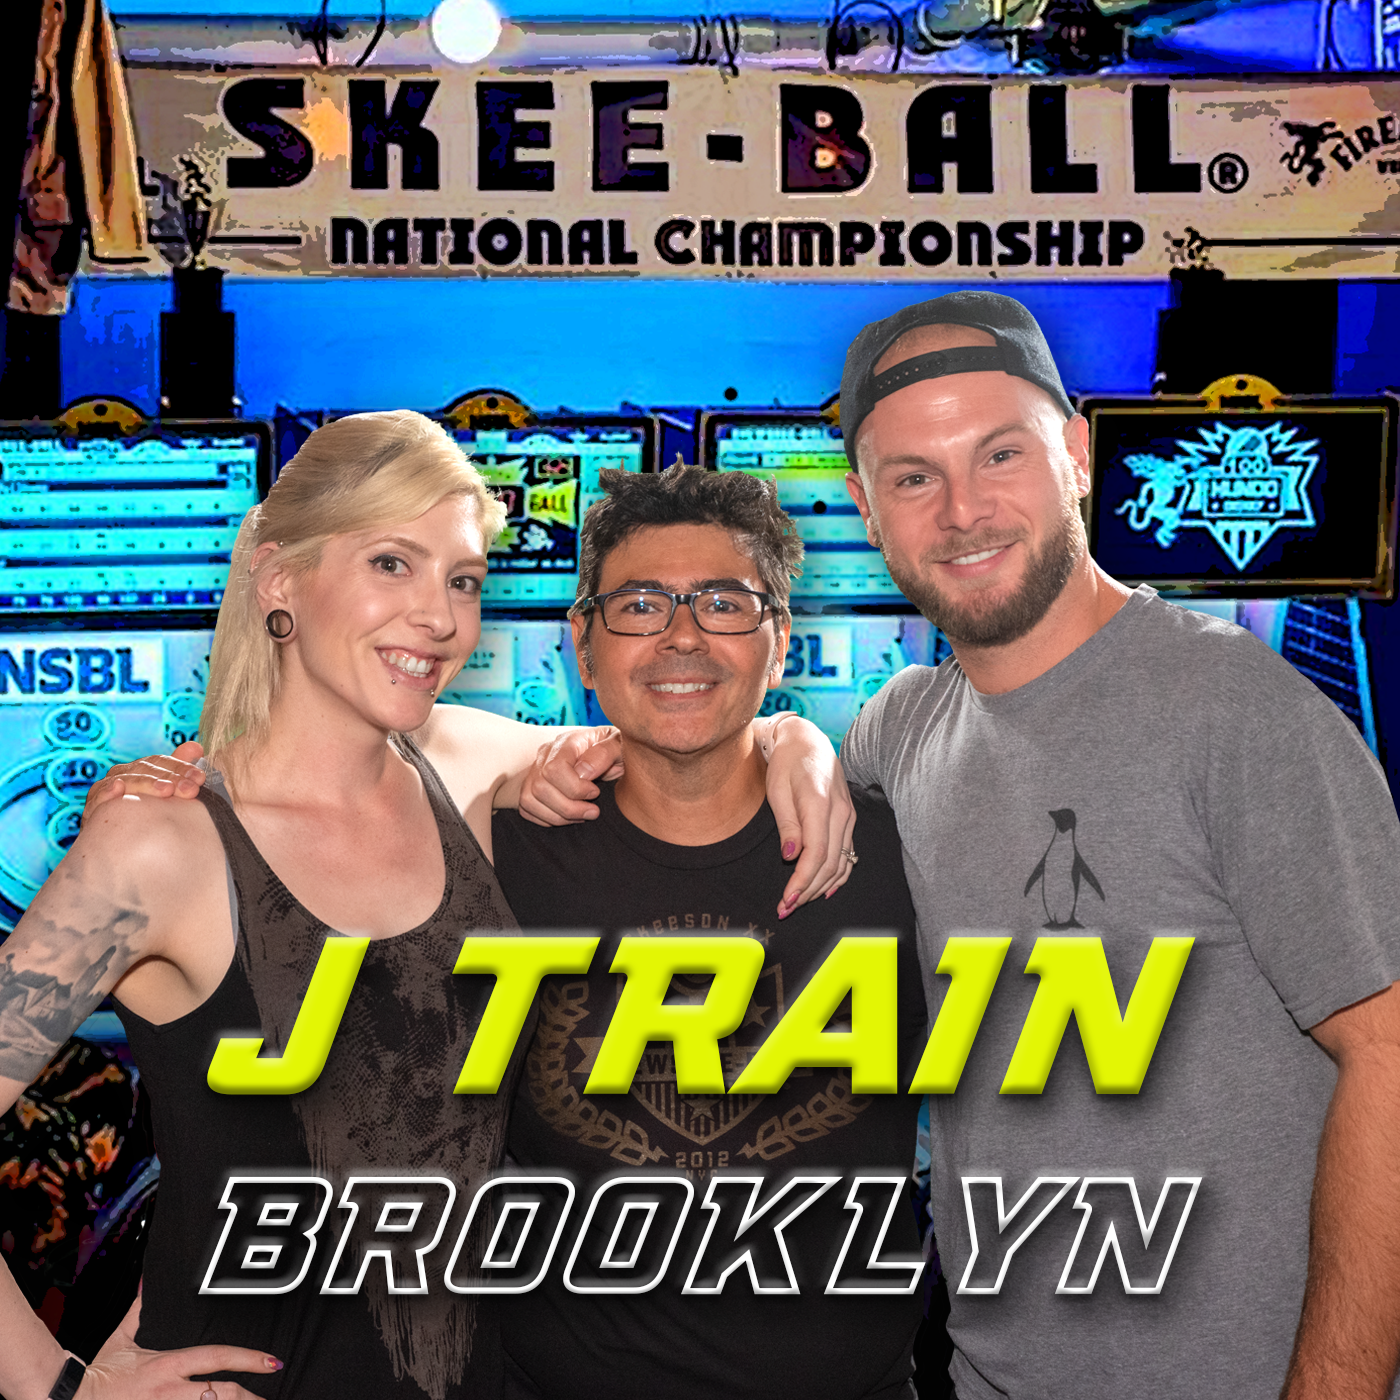 competitive skee-ball team at the championship